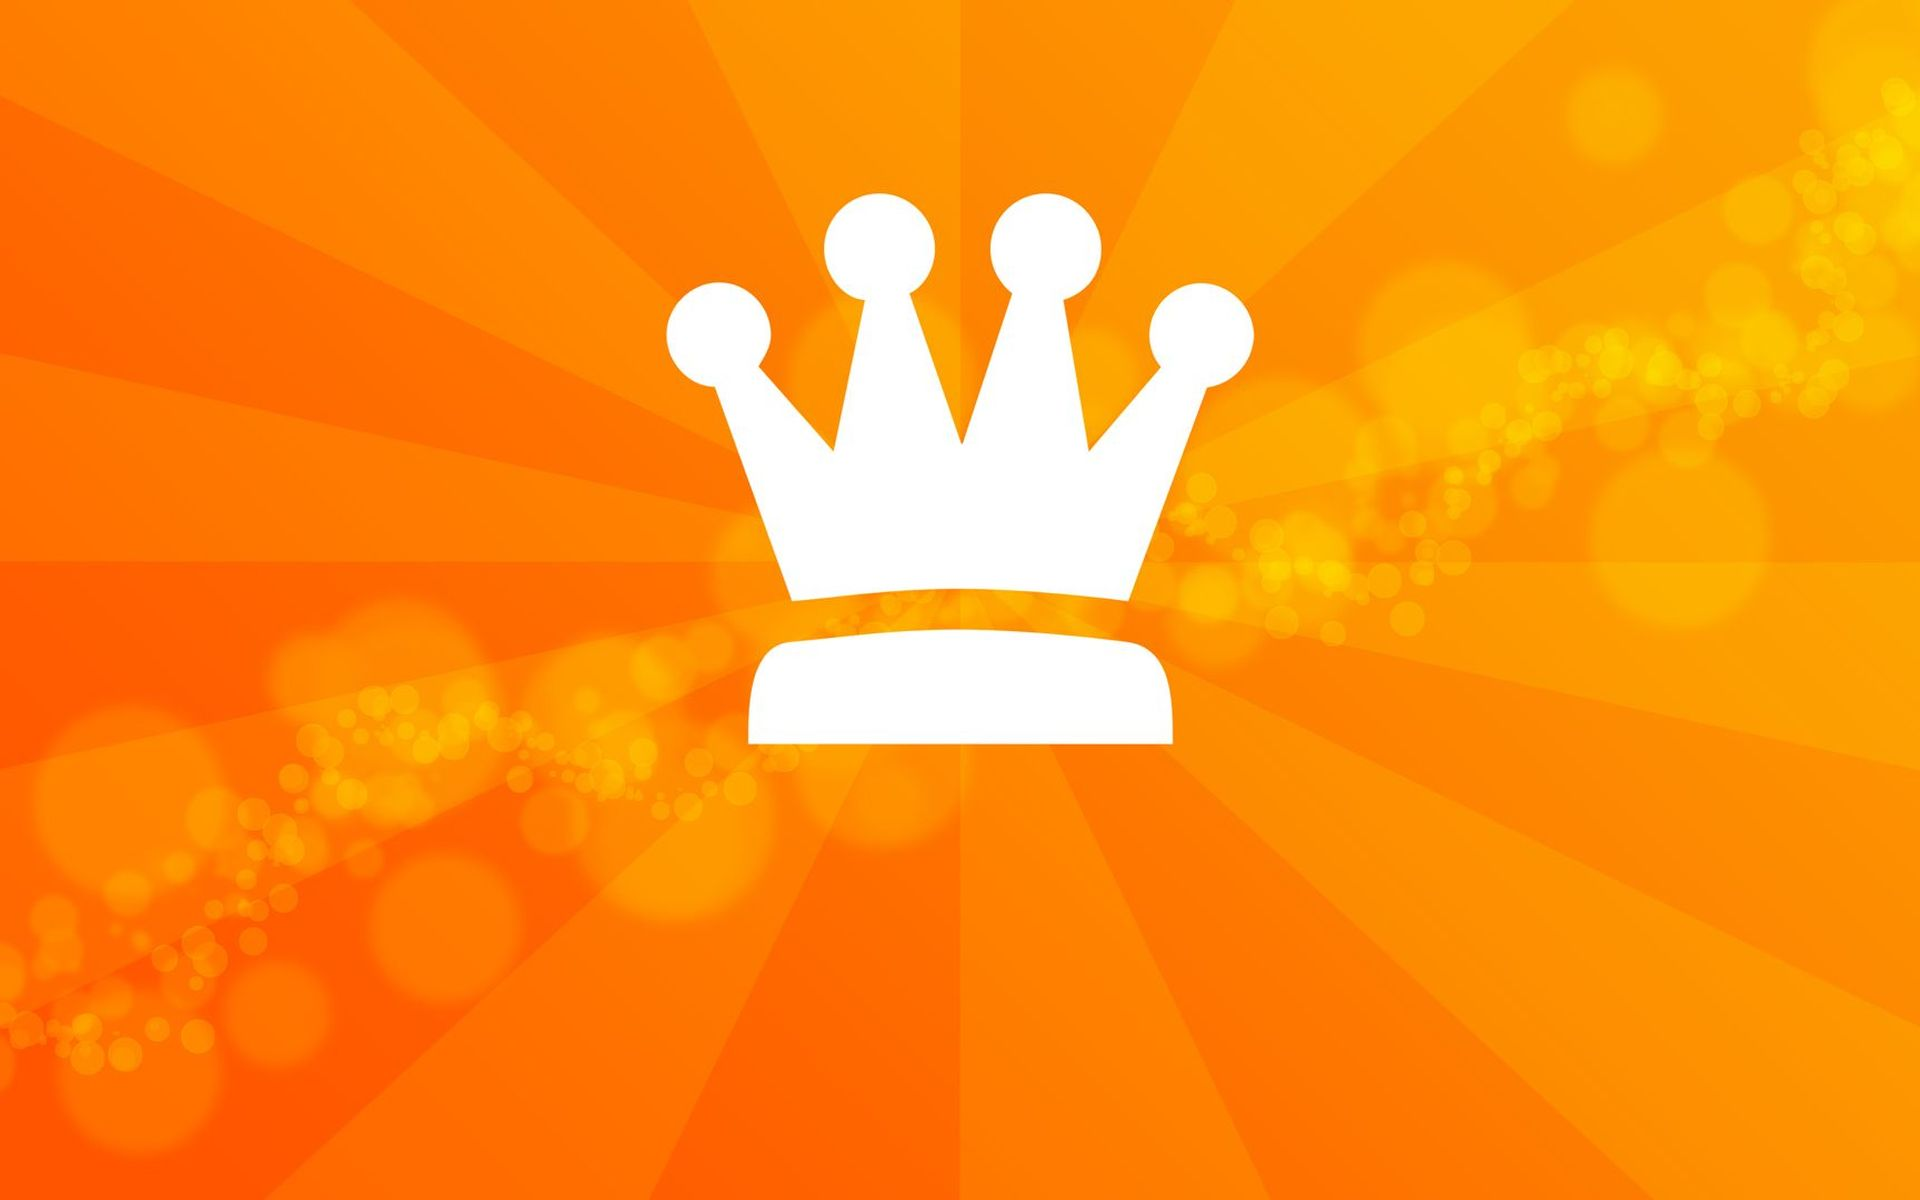 Download Free Crown Backgrounds